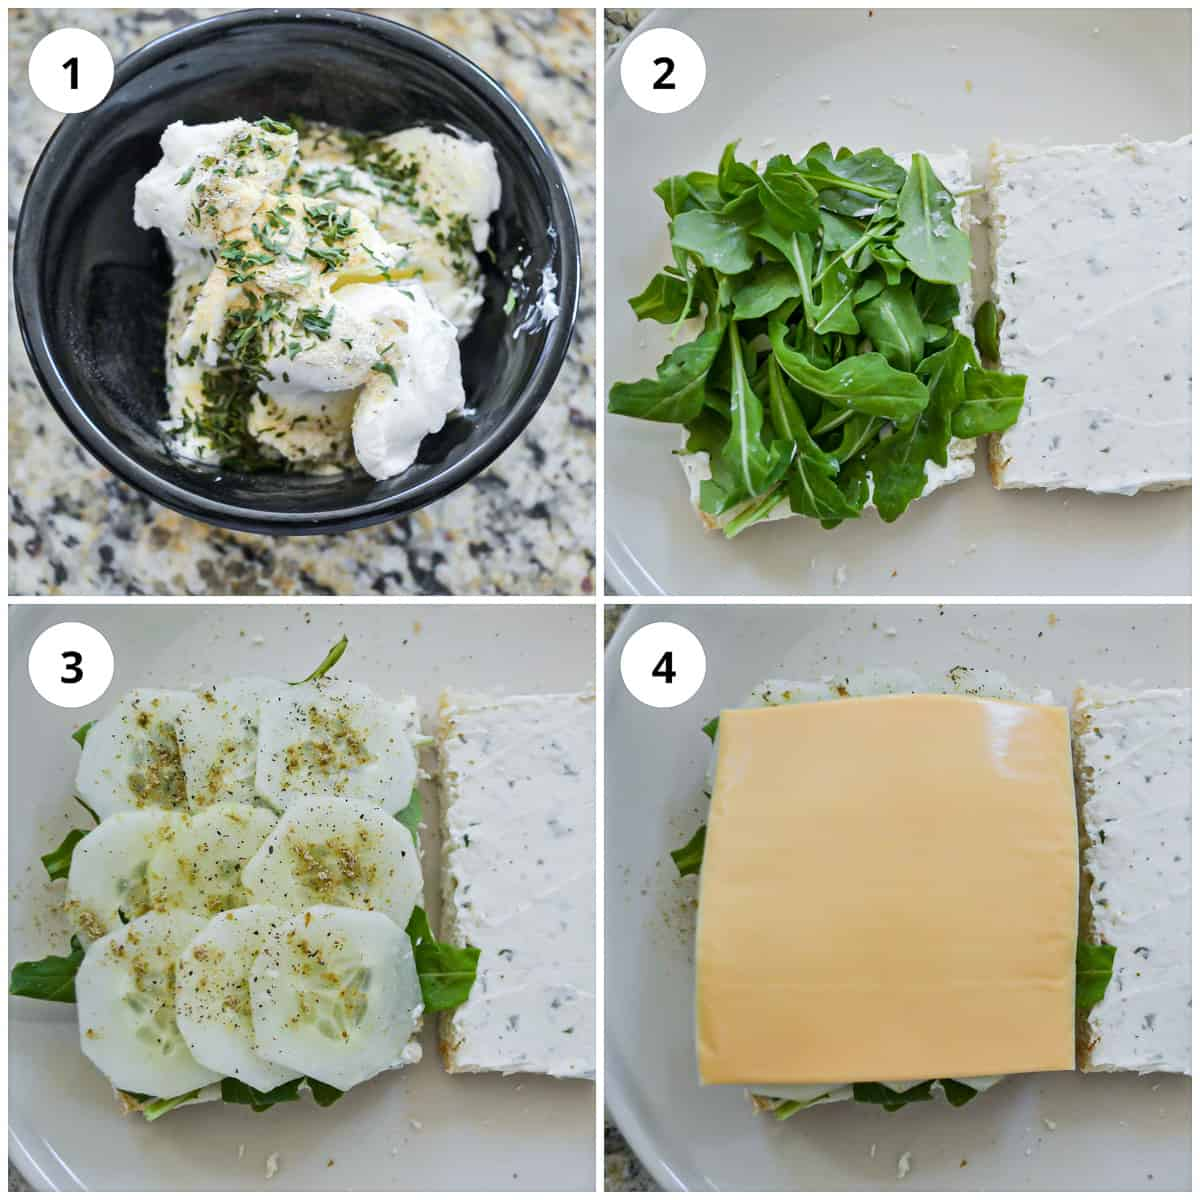 Four photos to show how to make the cucumber cream cheese sandwiches